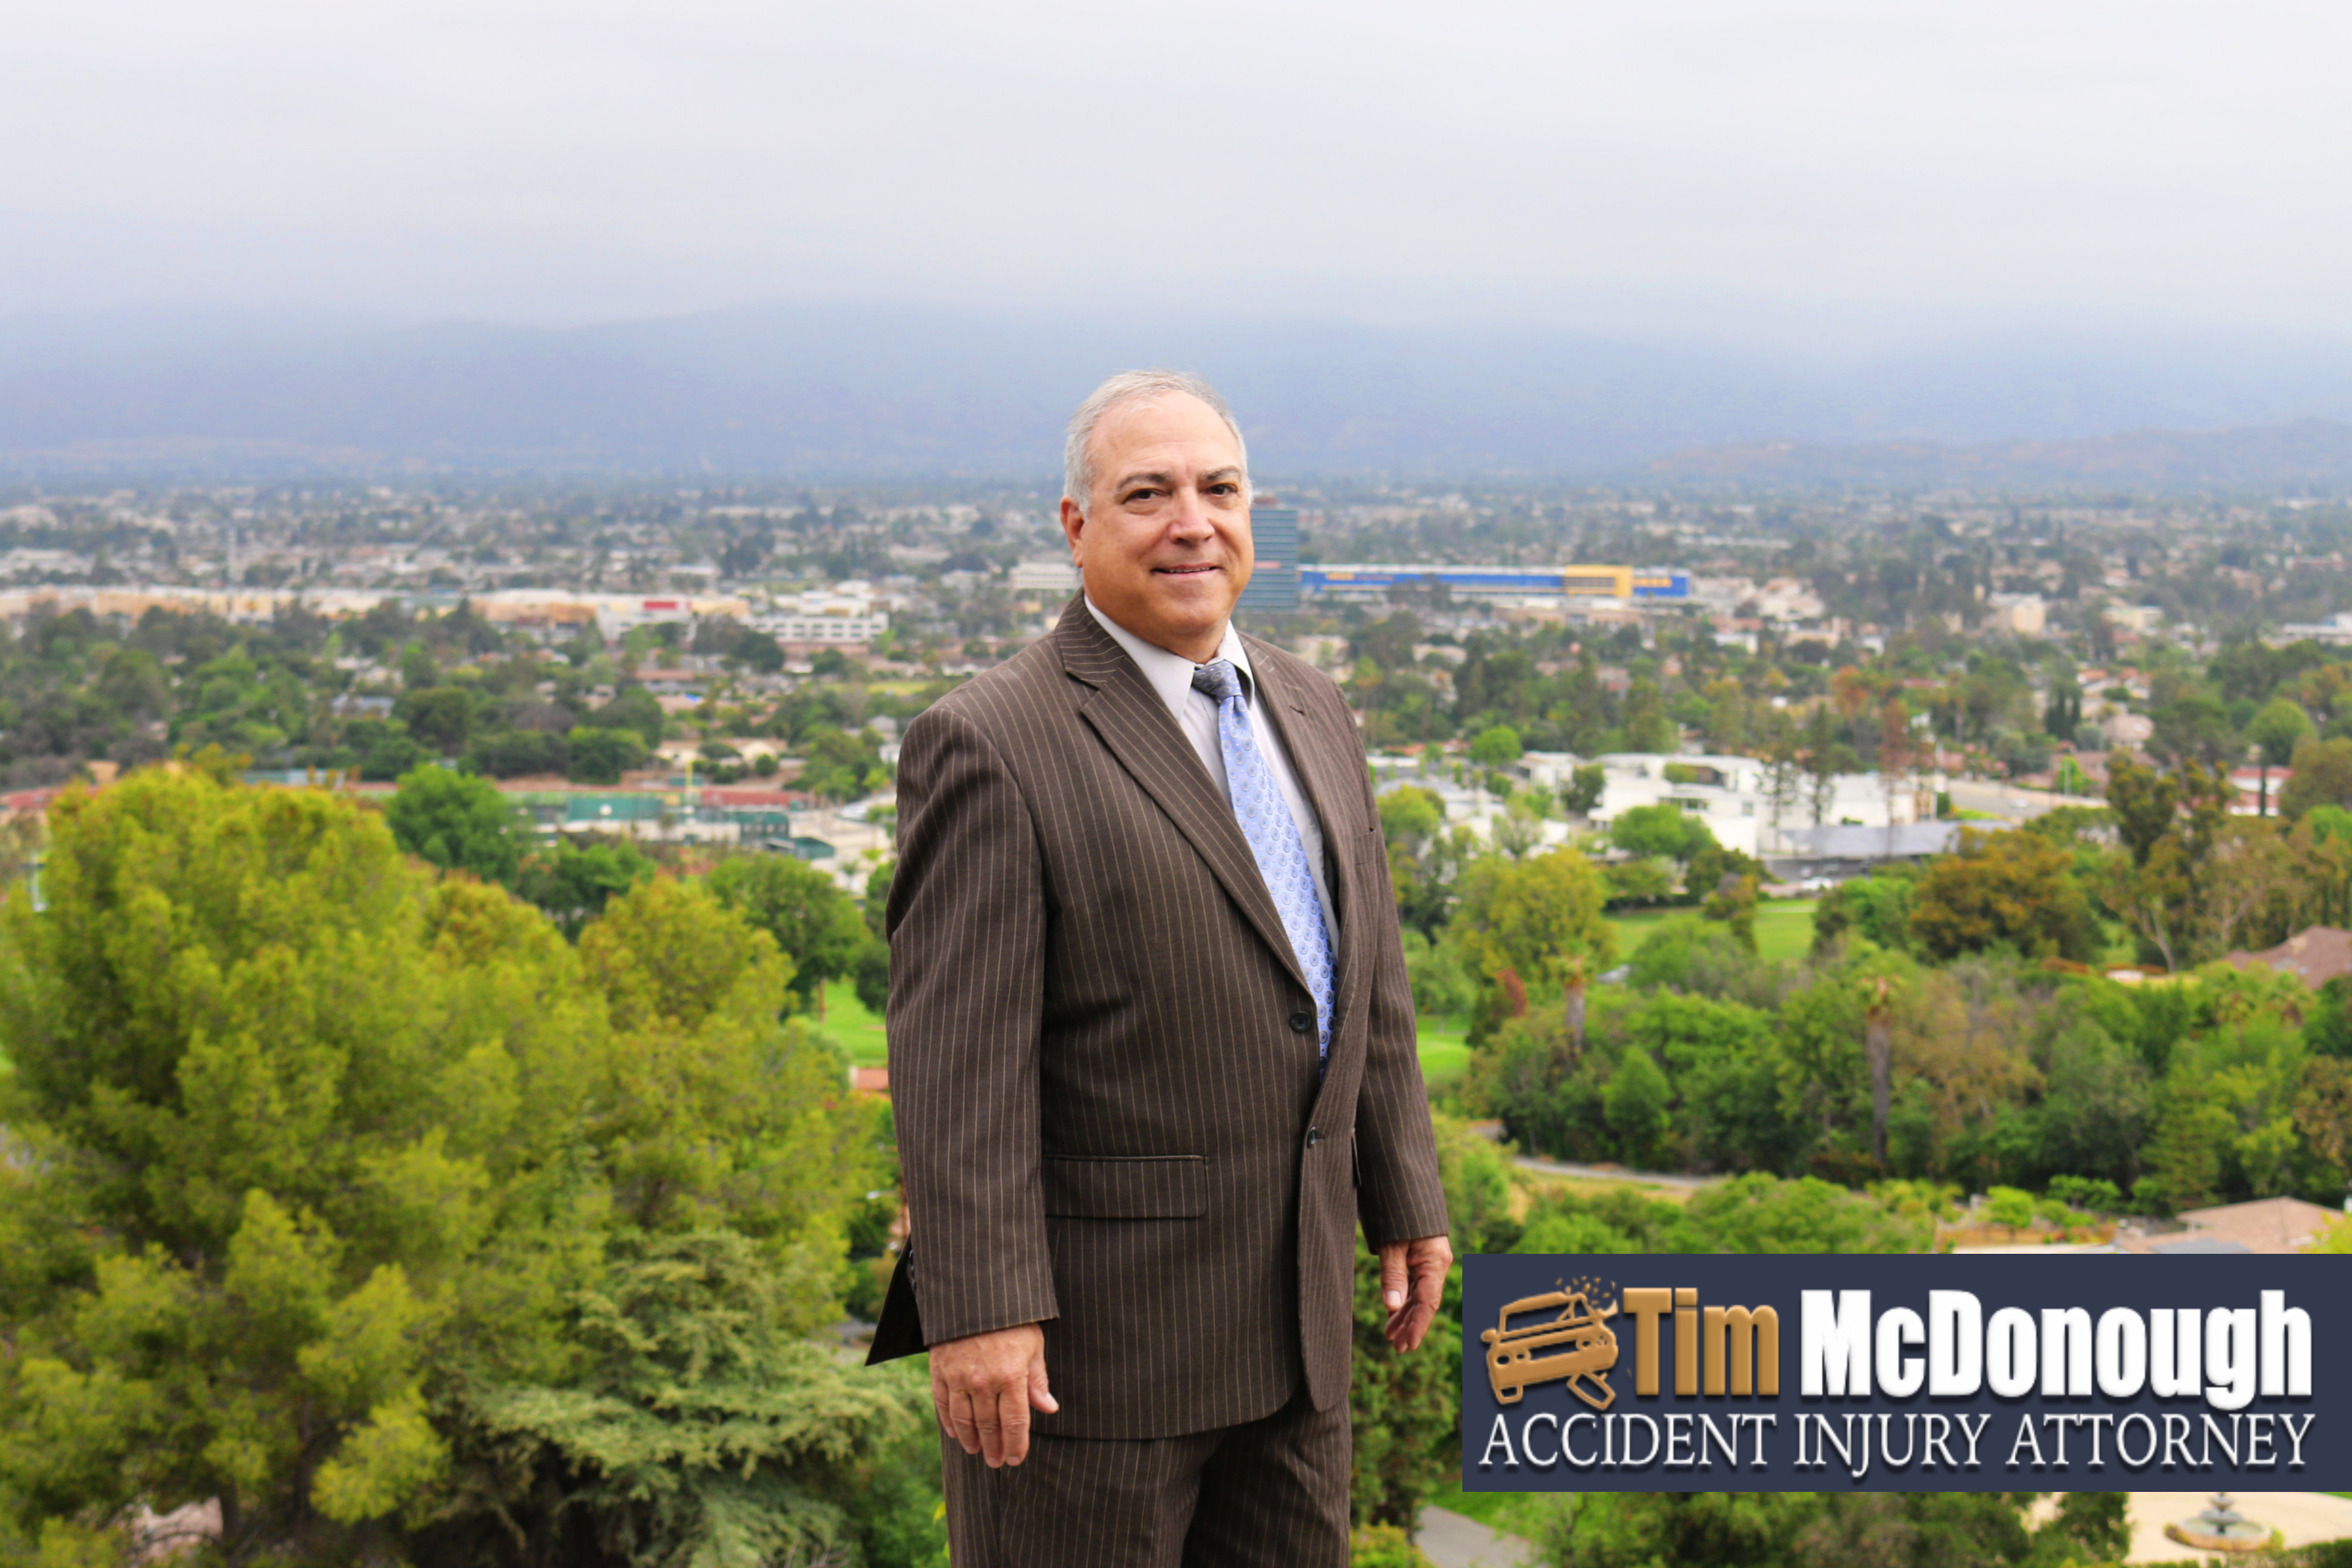 Covina Accident Injury Attorney - Accident Attorney Tim McDonough